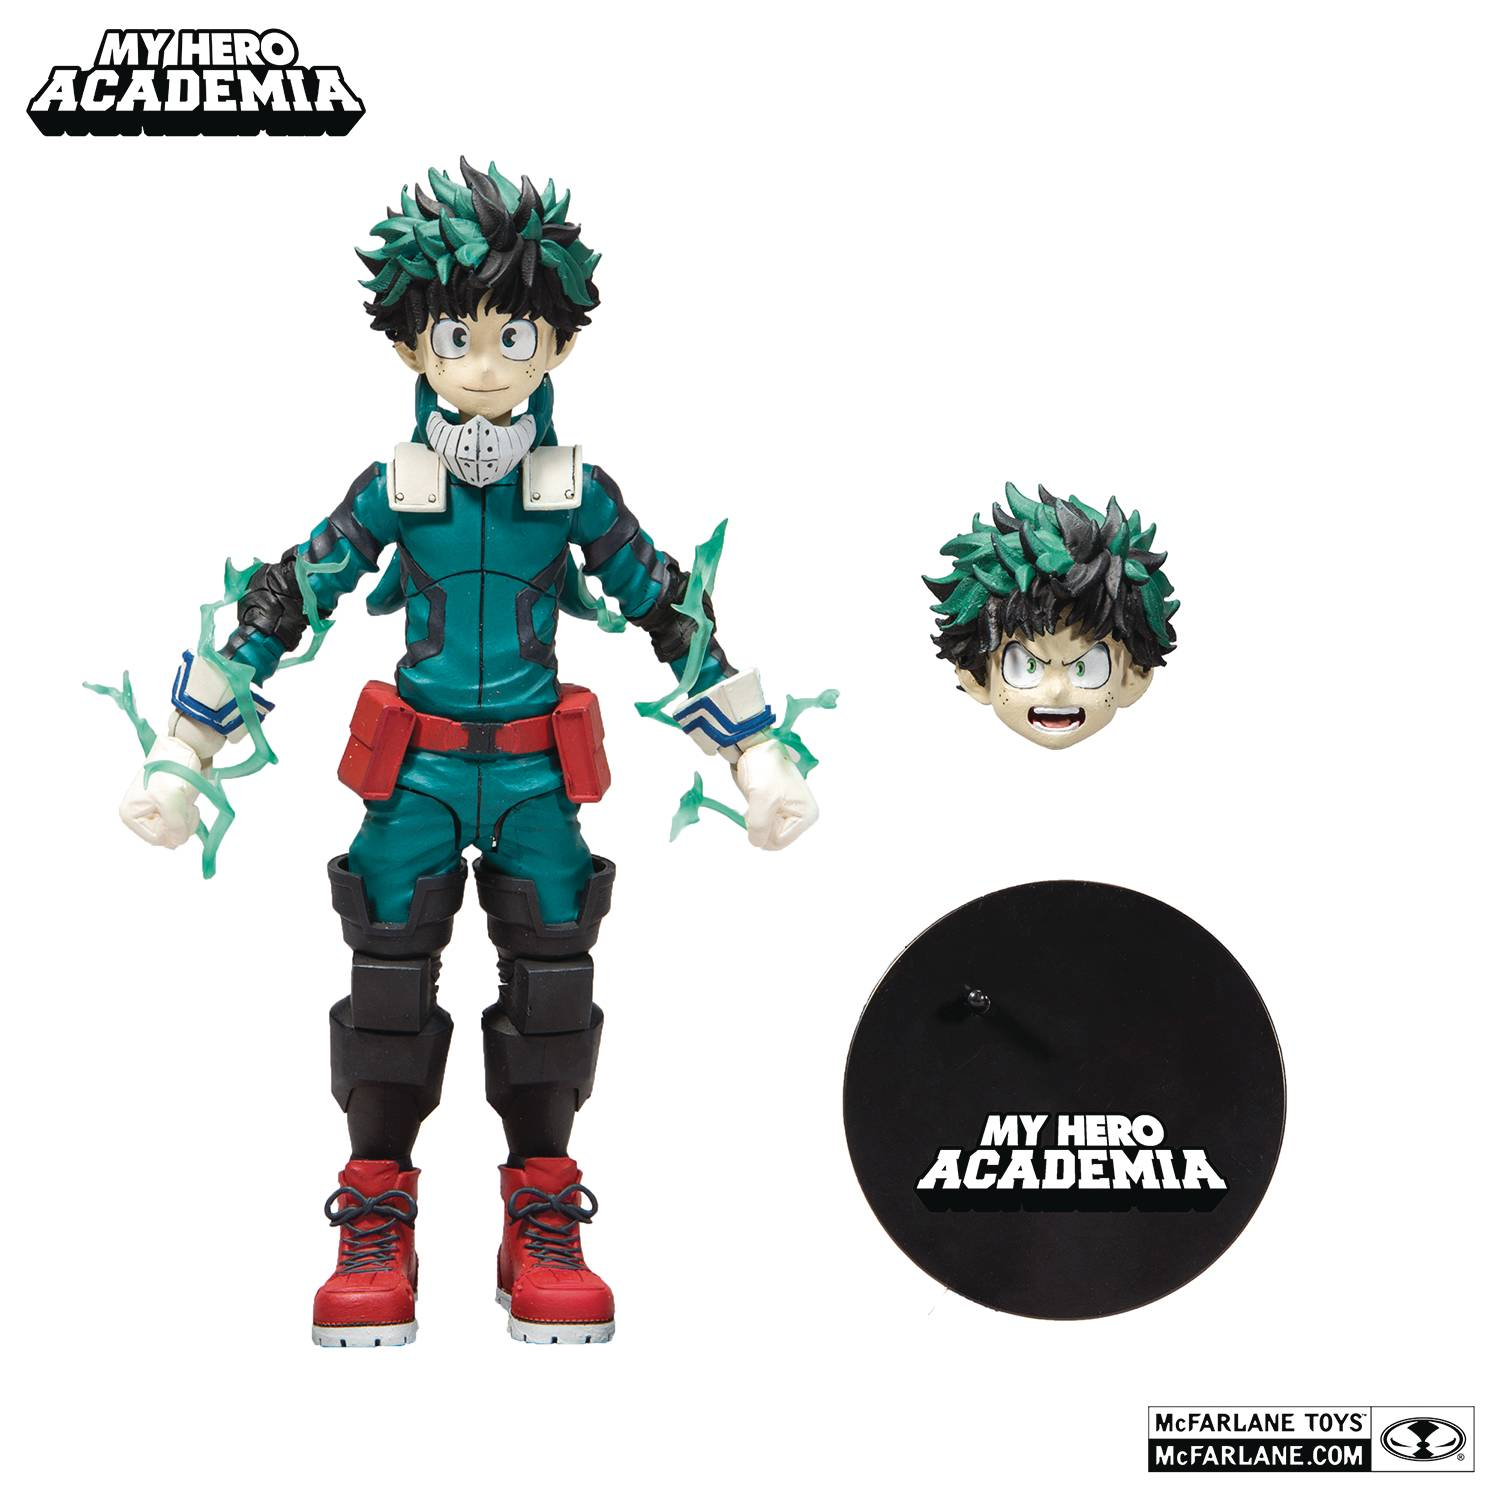 My Hero Academia Midoriya Action Figure